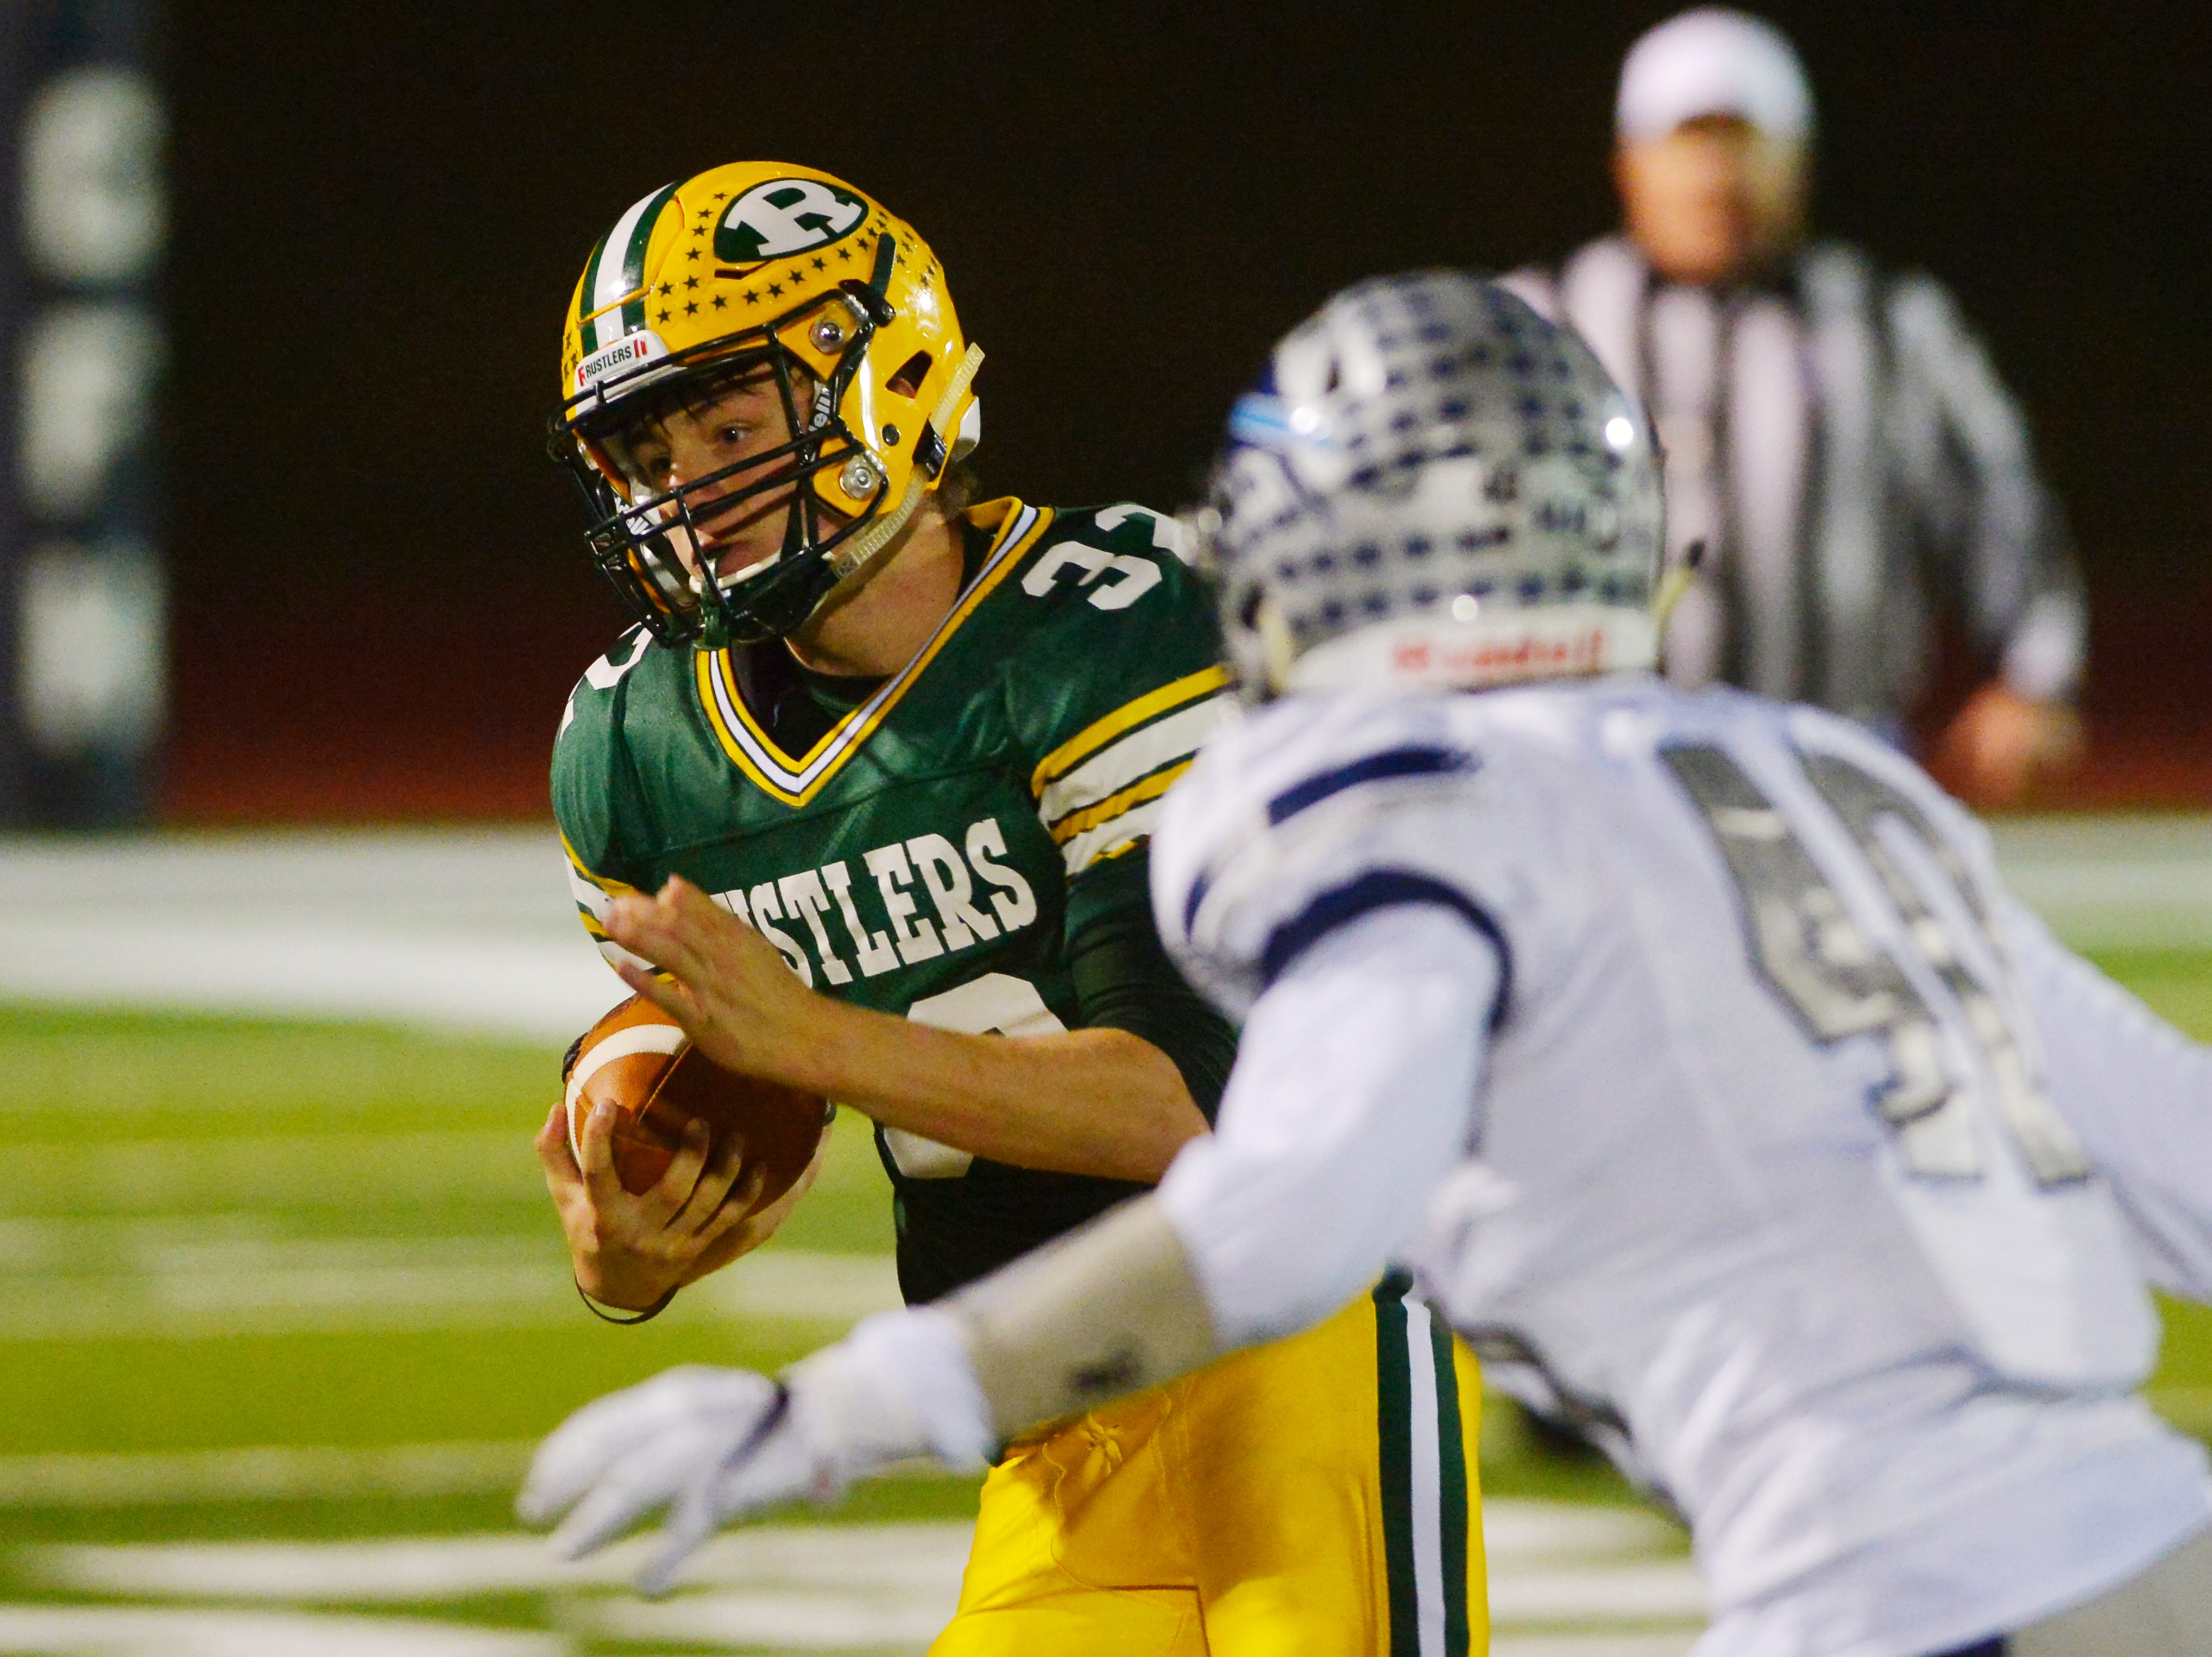 CMR's Jayson Ingalls carries the ball during the crosstown football game between Great Falls High and CMR on Friday night at Memorial Stadium.